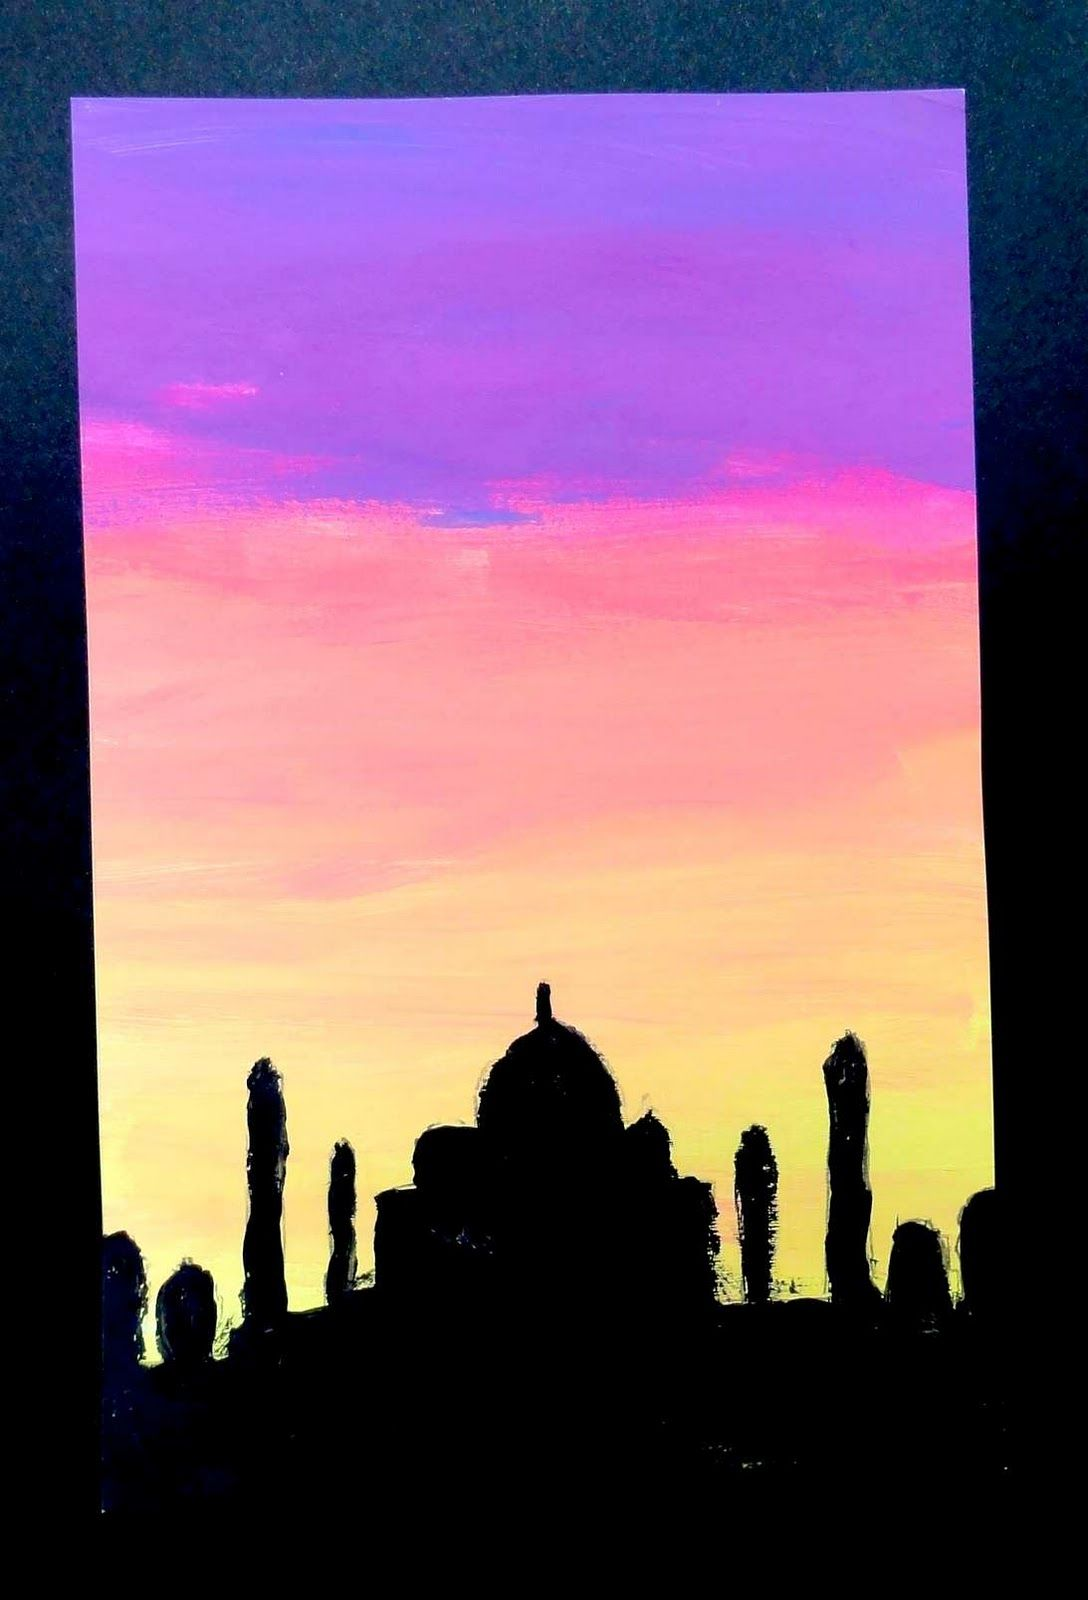 Arteascuola Silhouette Art Camping Art Silhouette Painting